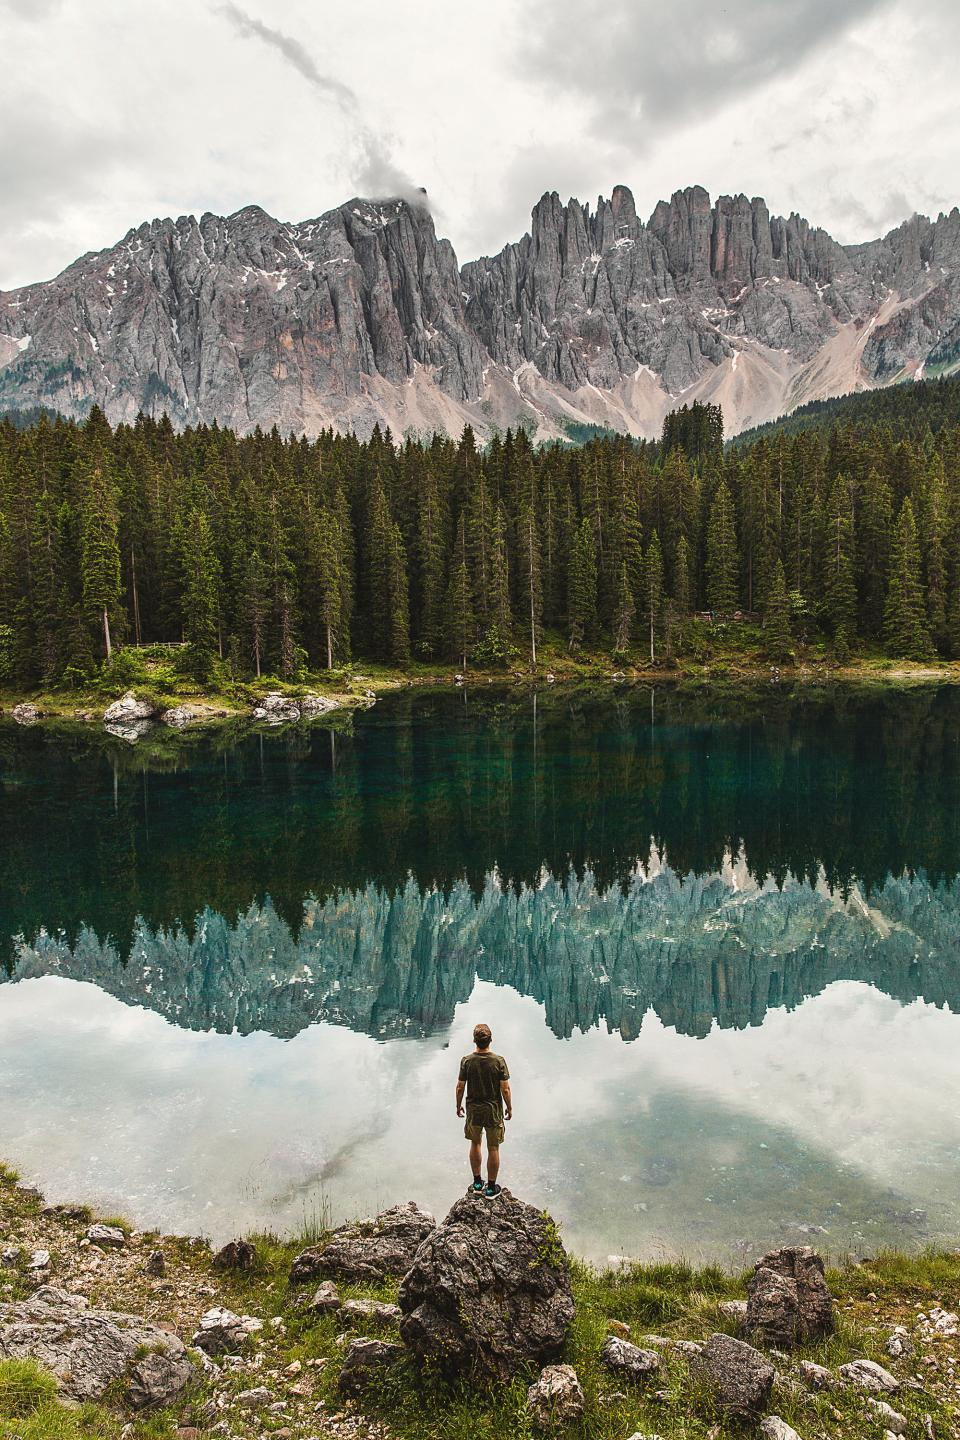 mountain, highland, cloud, sky, summit, ridge, landscape, nature, valley, hill, cliff, trees, plants, outdoor, lake, water, reflection, green, grass, people, man, guy, alone, millennials, travel, adventure